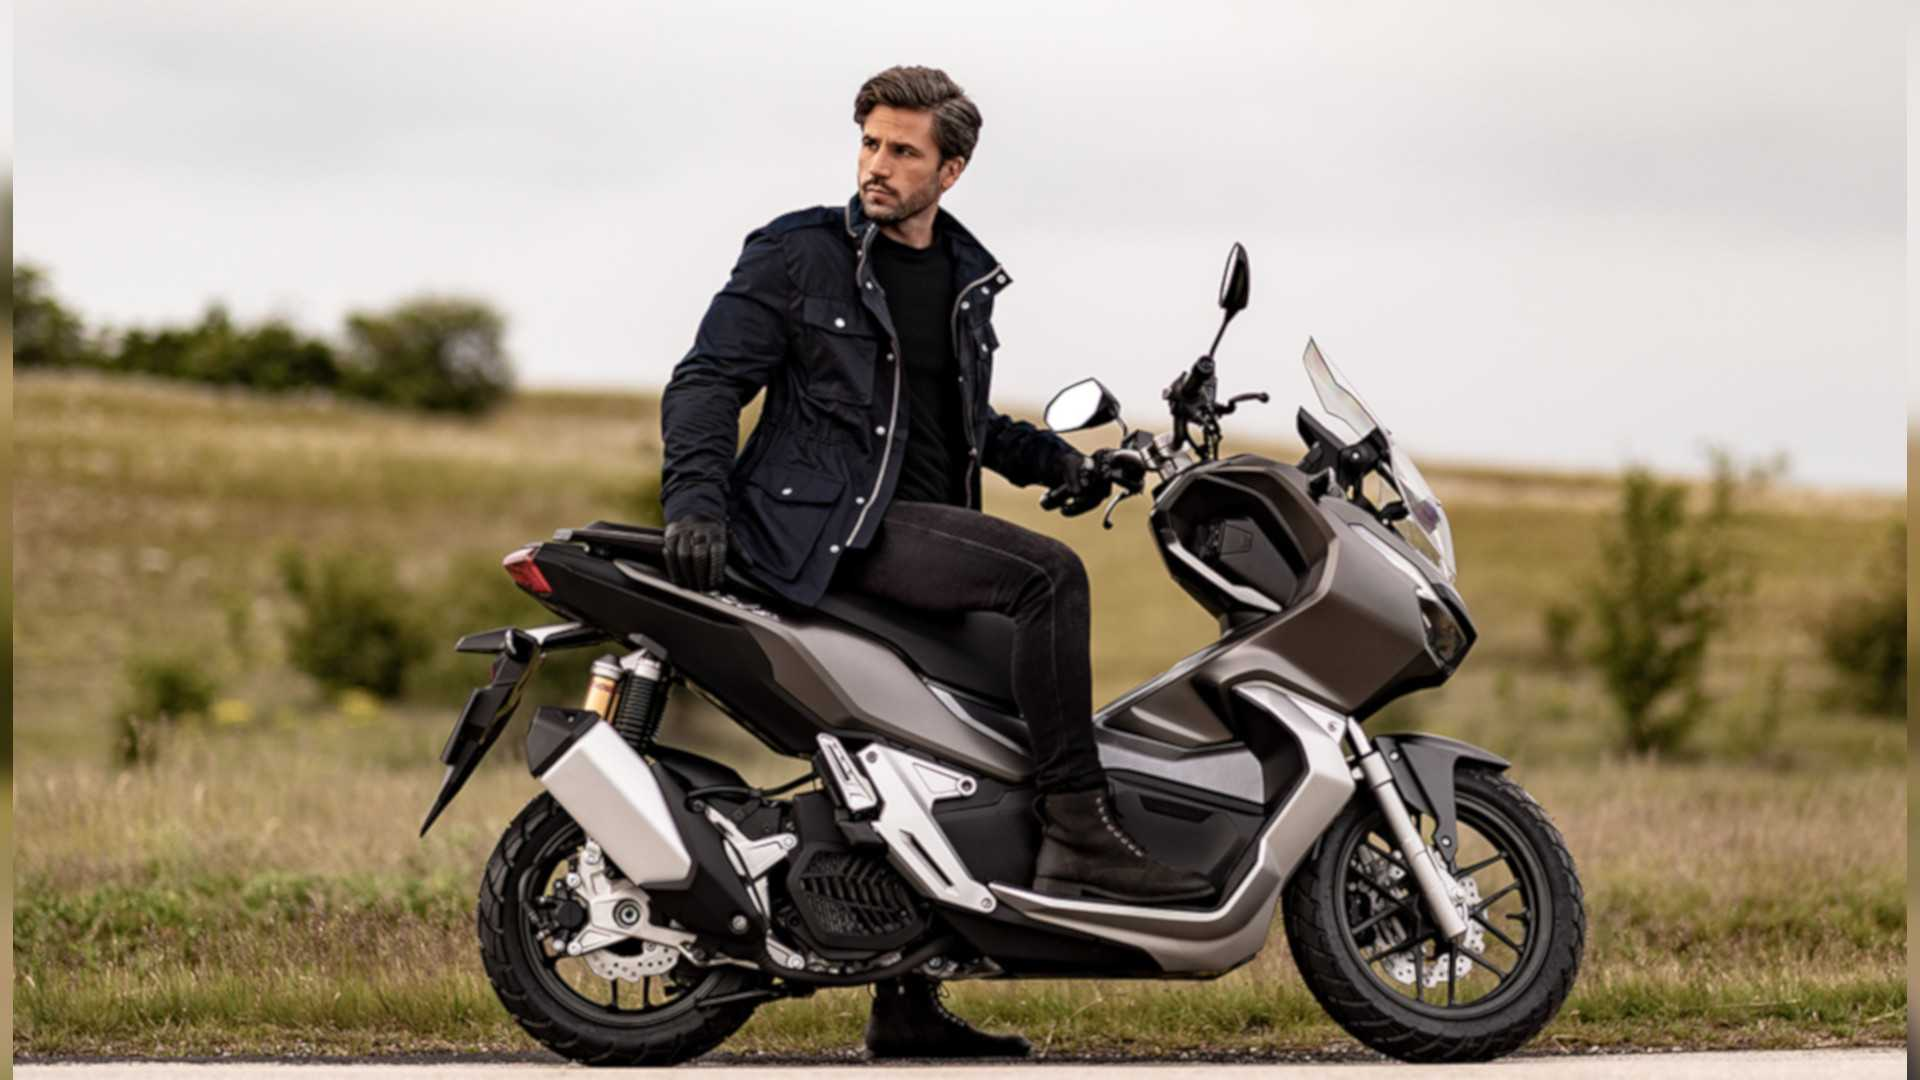 Honda Will Bring Its Adv 150 Scooter To The U S In 2021 Webbikeworld